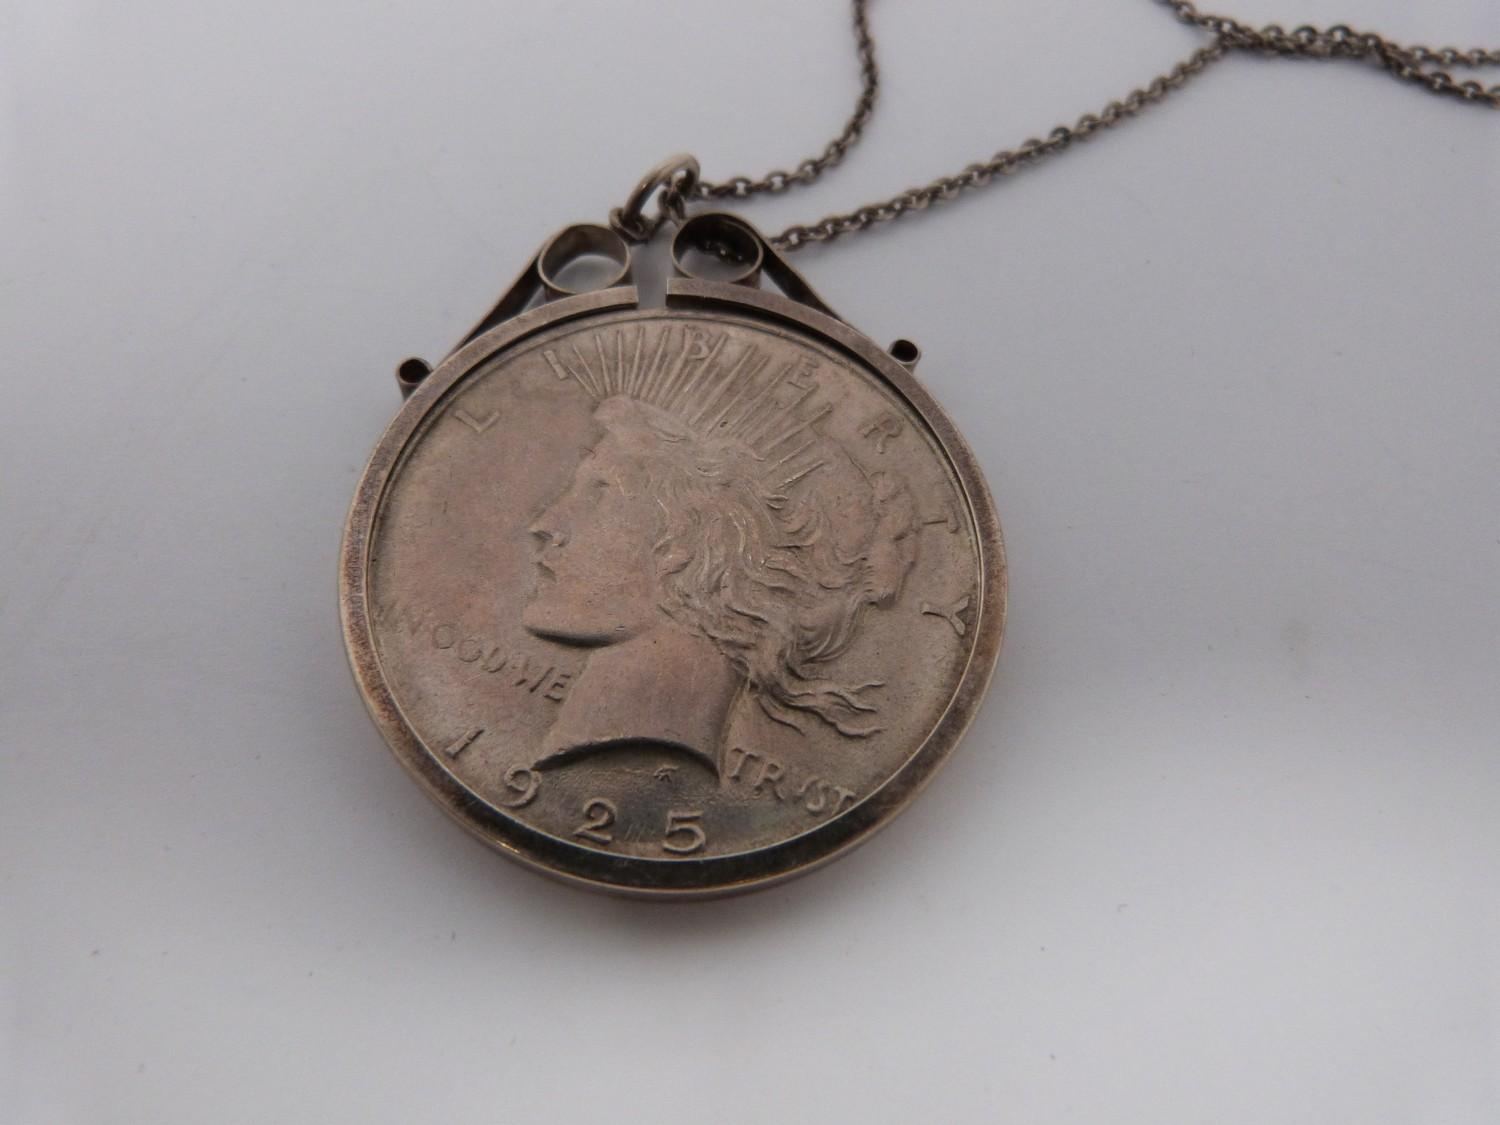 Two silver coins in silver and white metal mounts on silver chains, an American one dollar coin, - Image 3 of 6